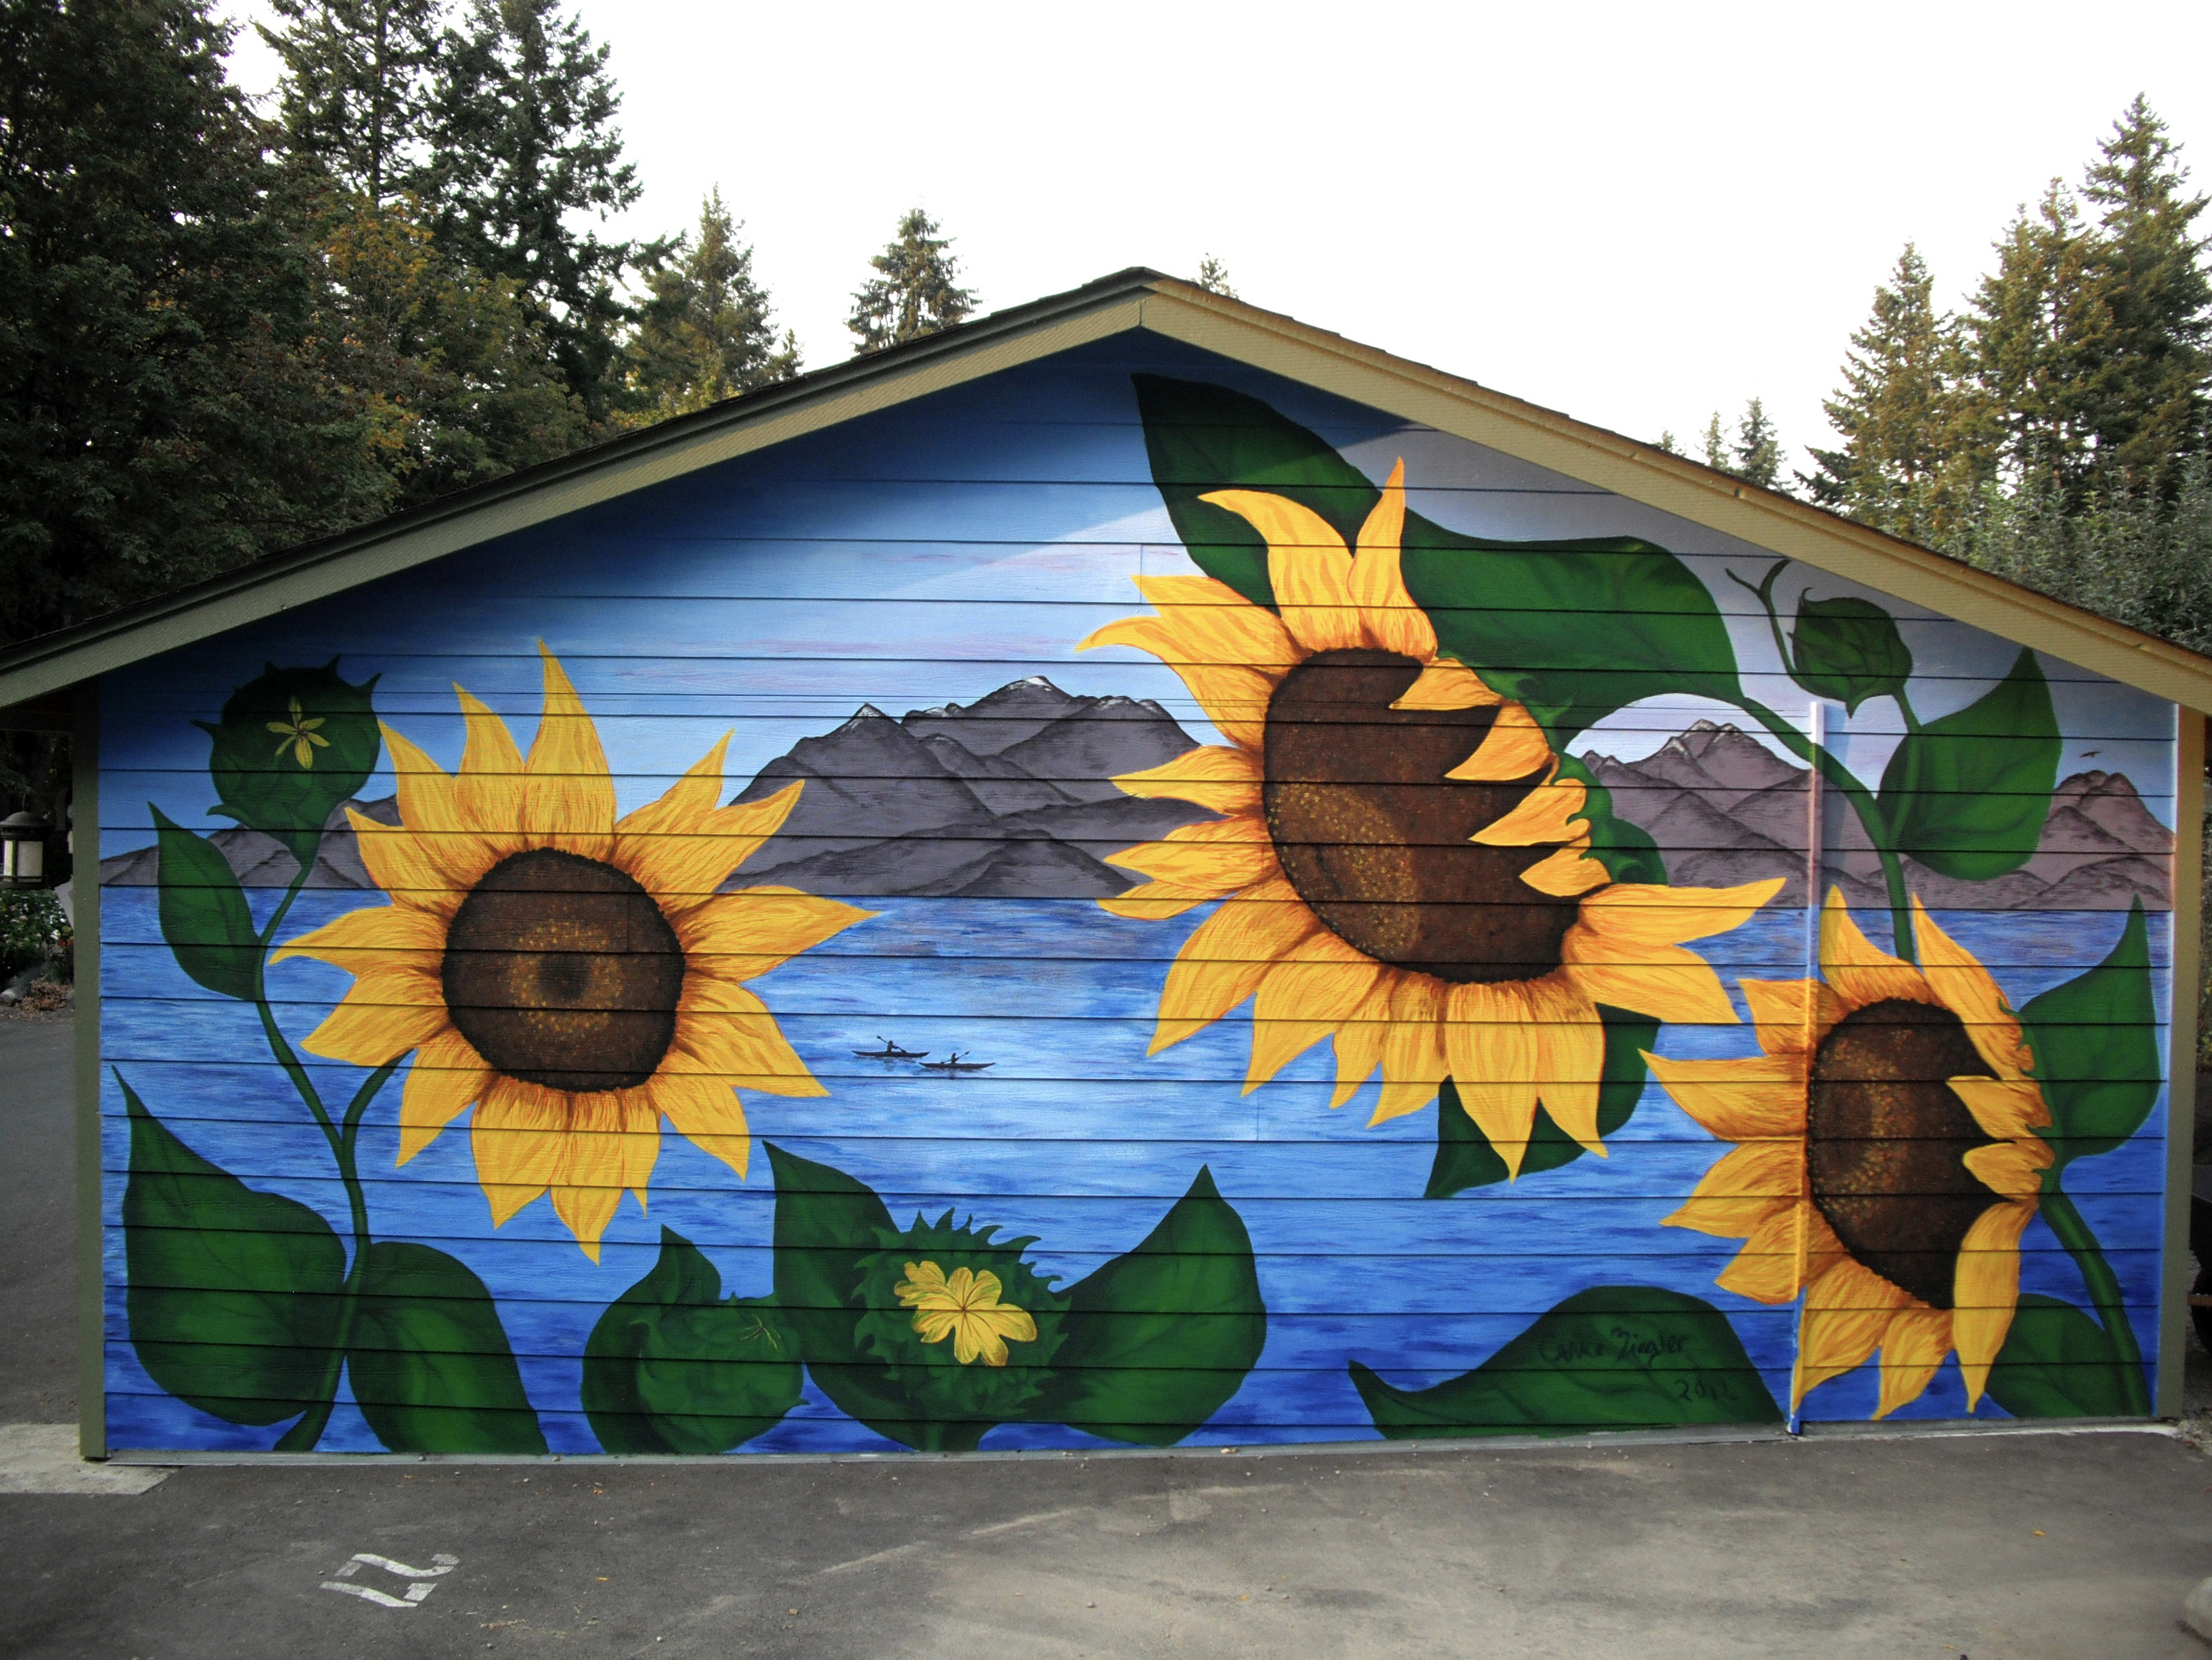 Sunflowers Mural   This bold and beautiful mural represents and welcomes visitors to Woodard Lane Cohousing.  Woodard Lane Cohousing, 1620 Woodard Ave NW, Olympia, WA 98502